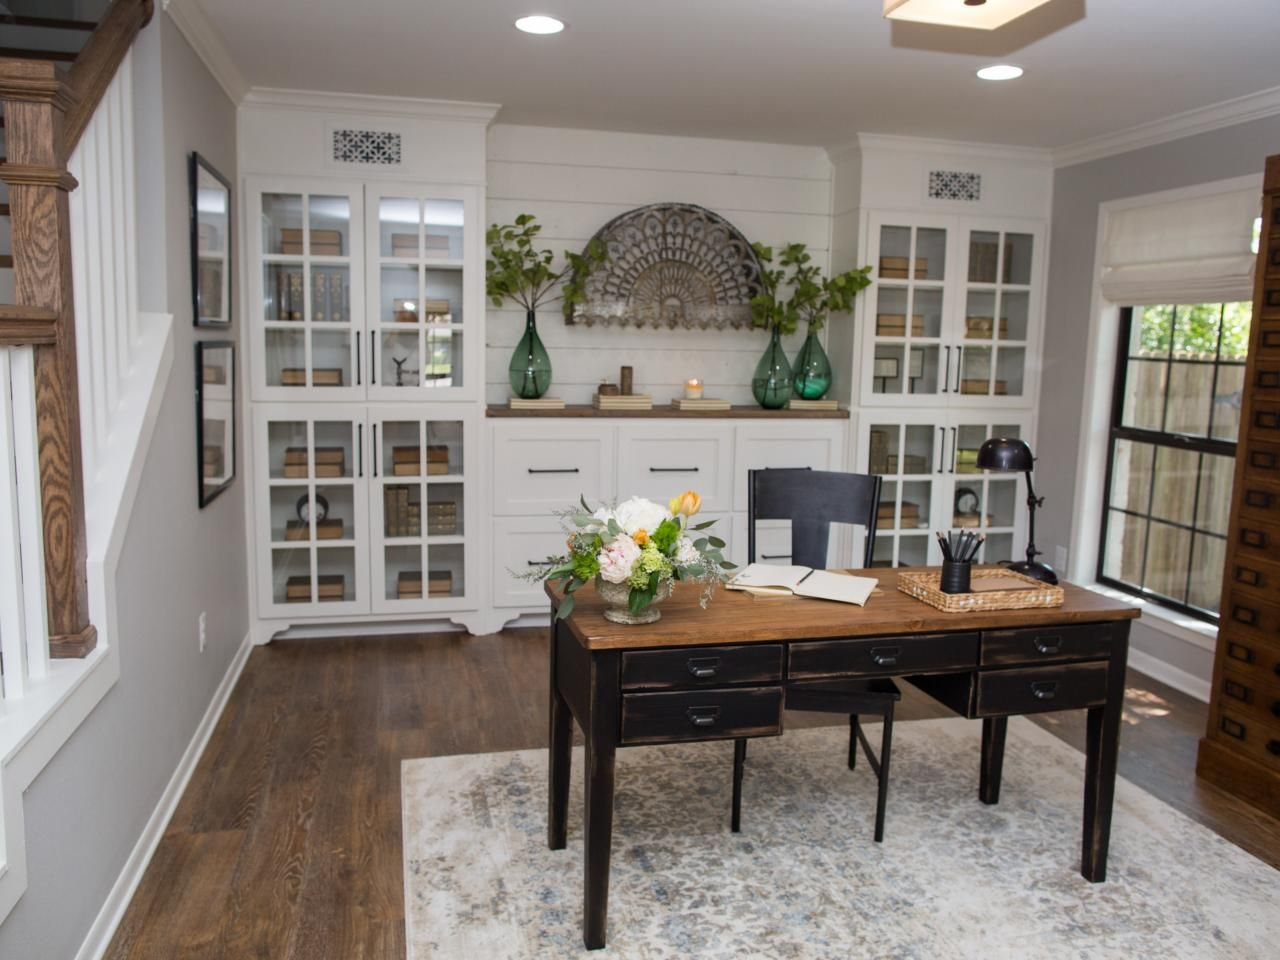 photos hgtv 39 s fixer upper with chip and joanna gaines hgtv home decor pinterest. Black Bedroom Furniture Sets. Home Design Ideas